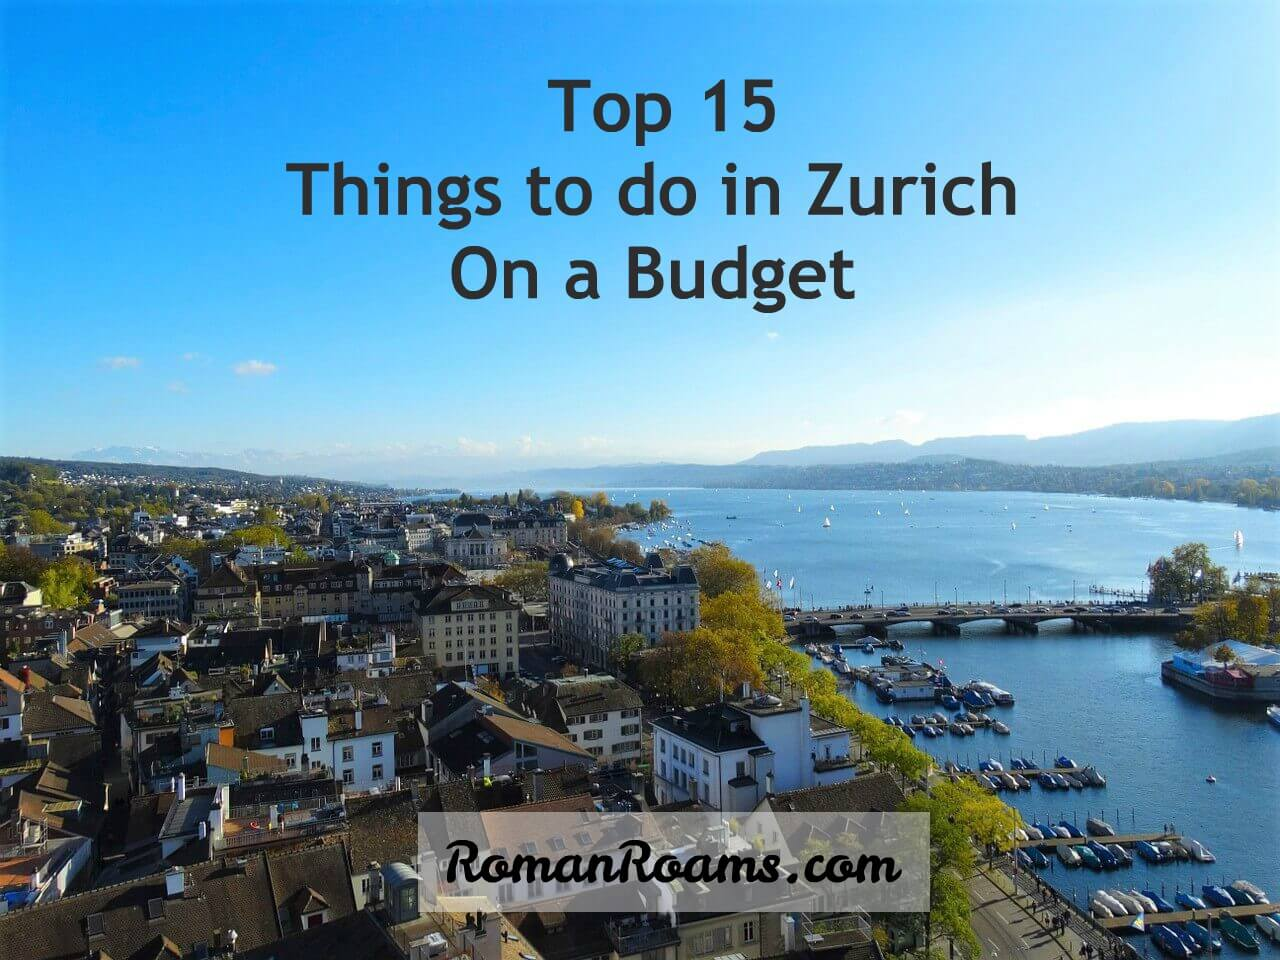 City panorama of Zurich, best things to do on a budget